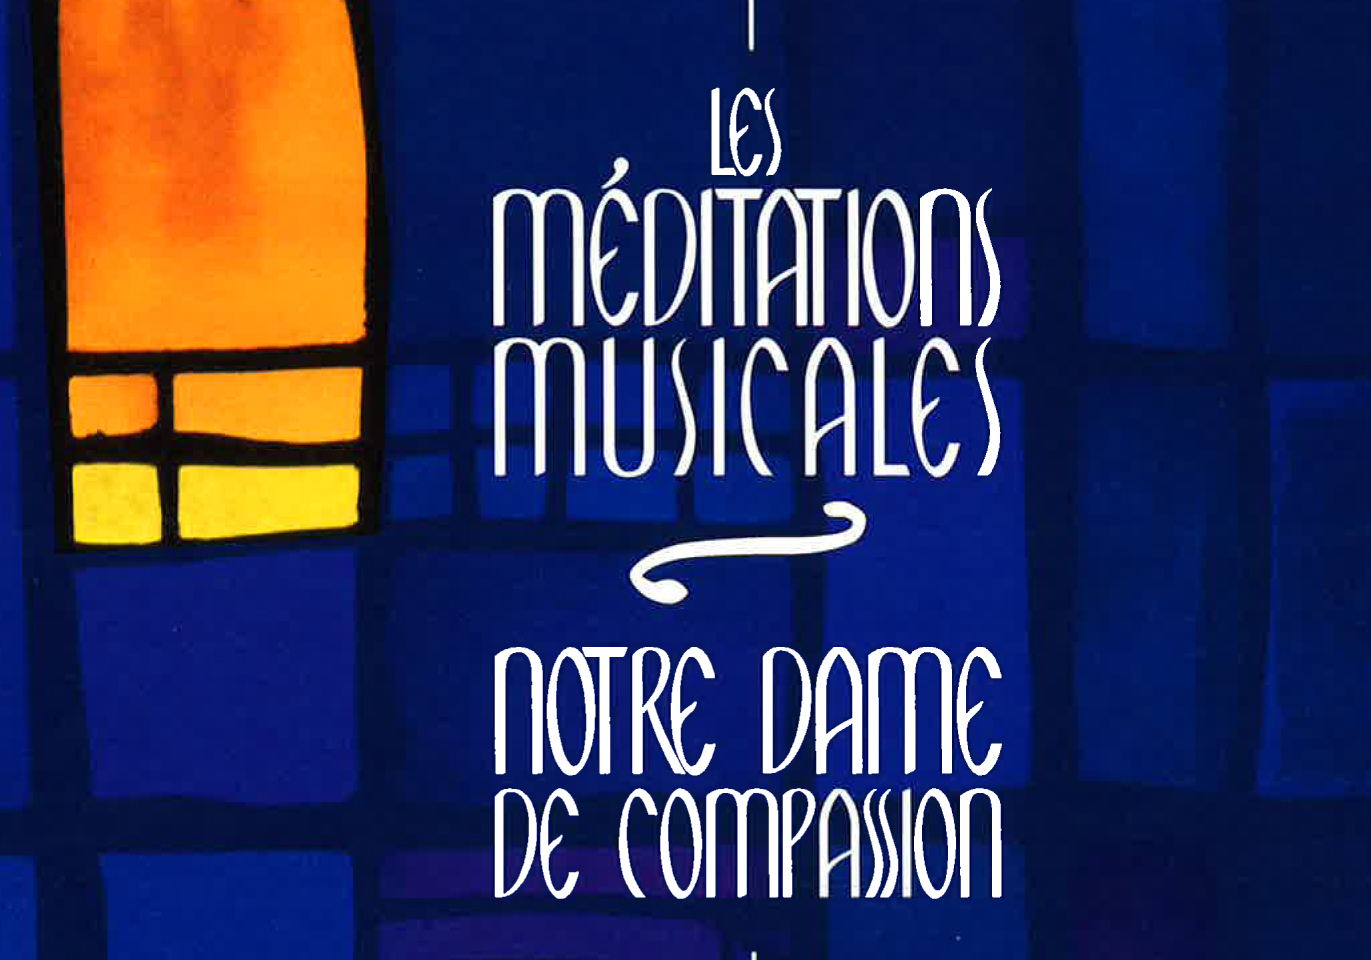 Meditations musicales